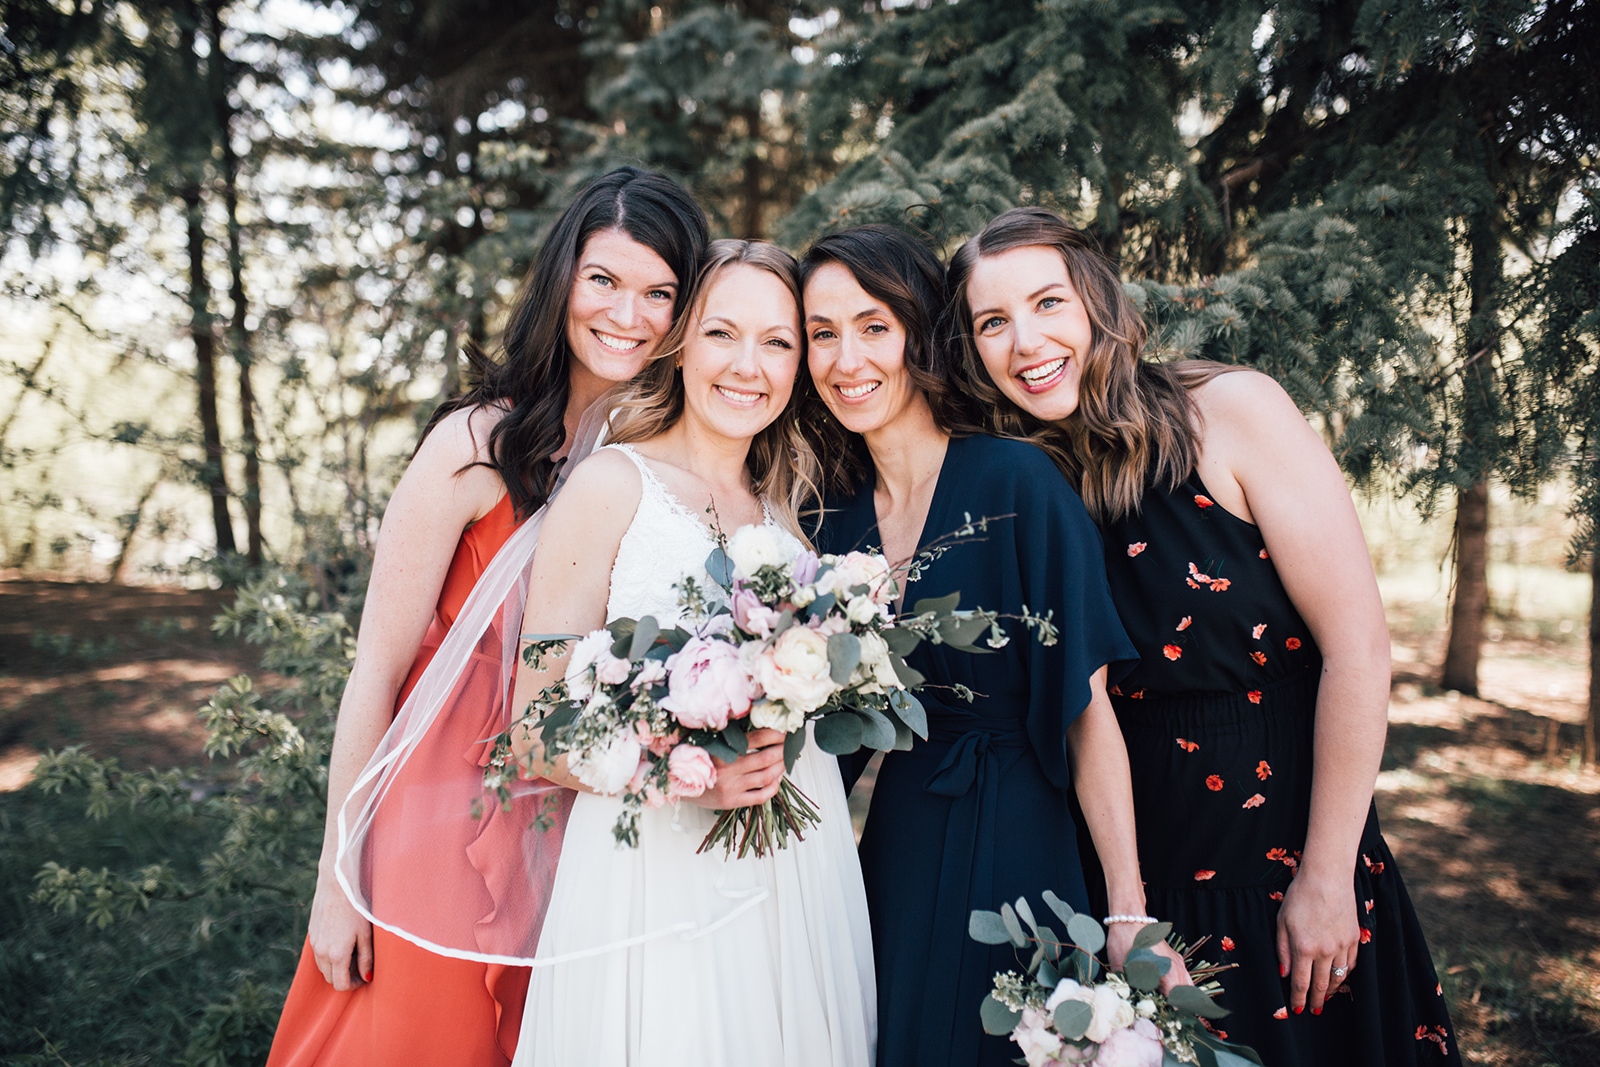 Winnipeg Wedding Florists - Wedding Planning in Winnipeg